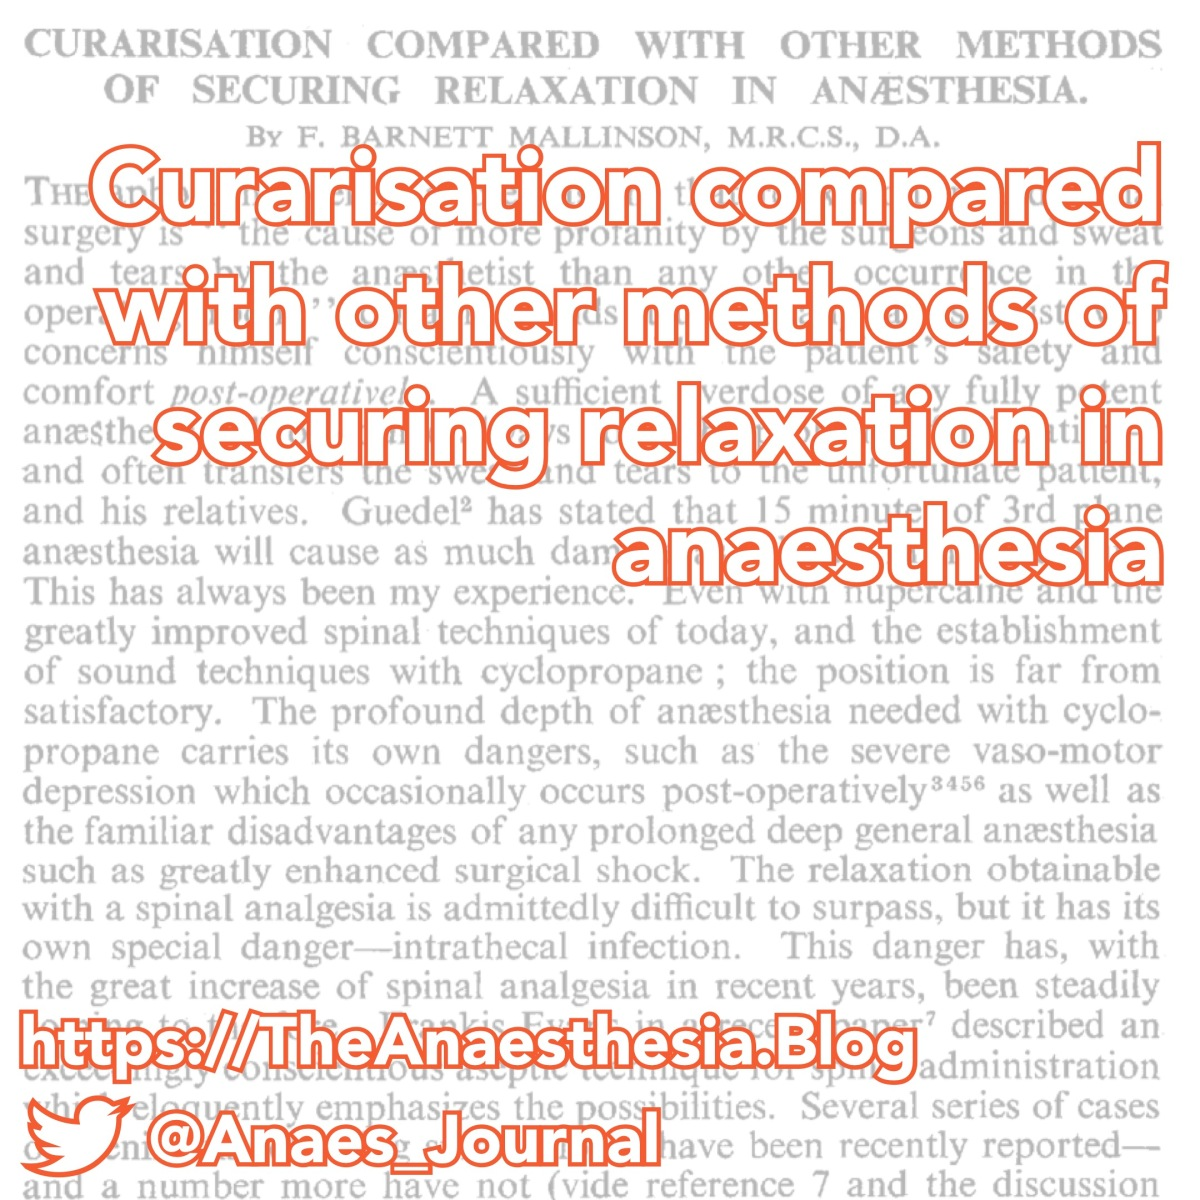 Curarisation compared with other methods of securing relaxation inanaesthesia